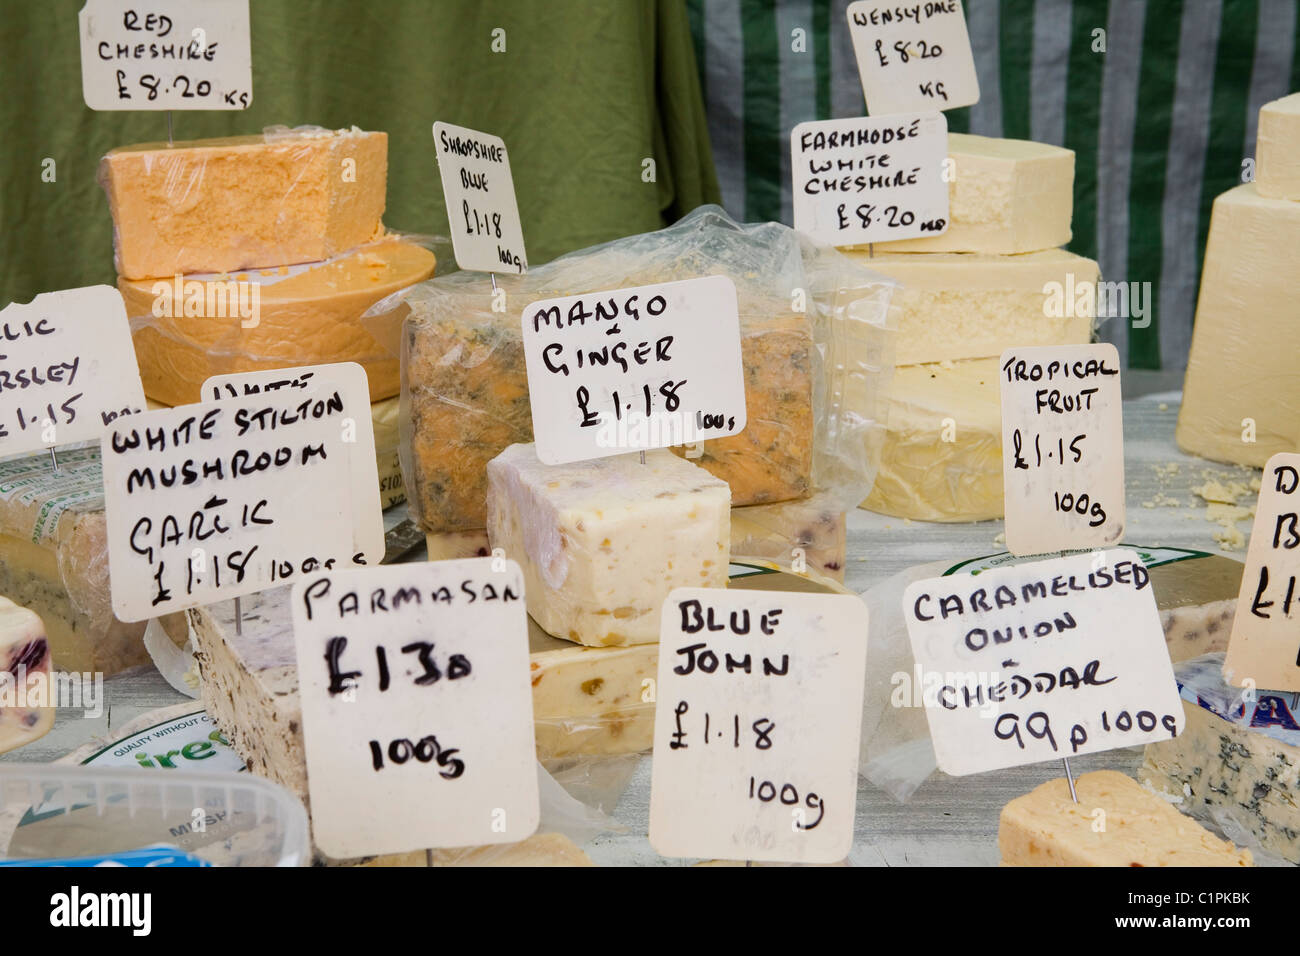 UK, Derbyshire, Bakewell, locally produced cheese on market stall - Stock Image